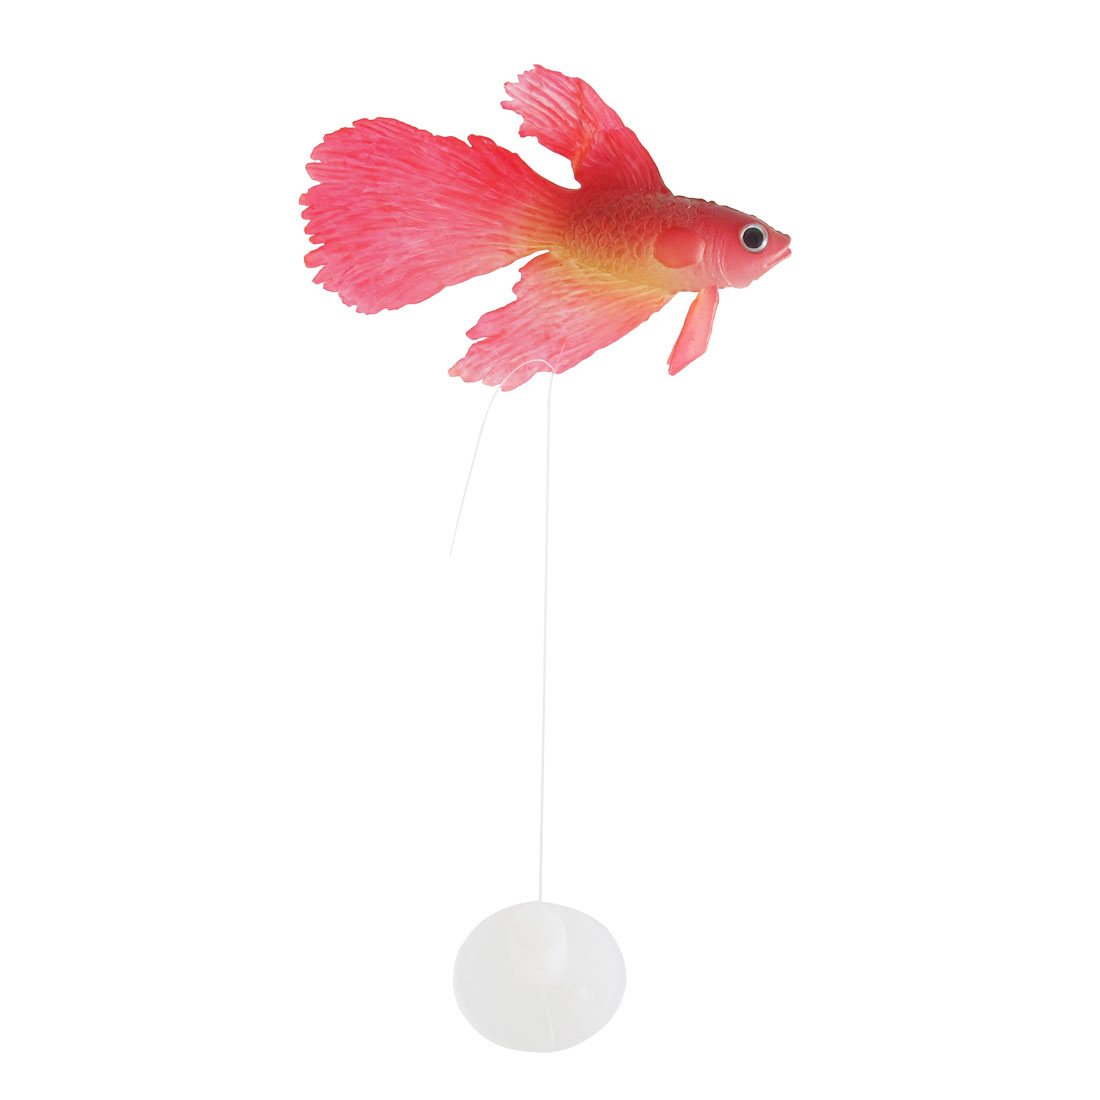 Fish Tank Aquarium Swing Tail Emulation Rubber Goldfish Ornament Red w Suction Cup